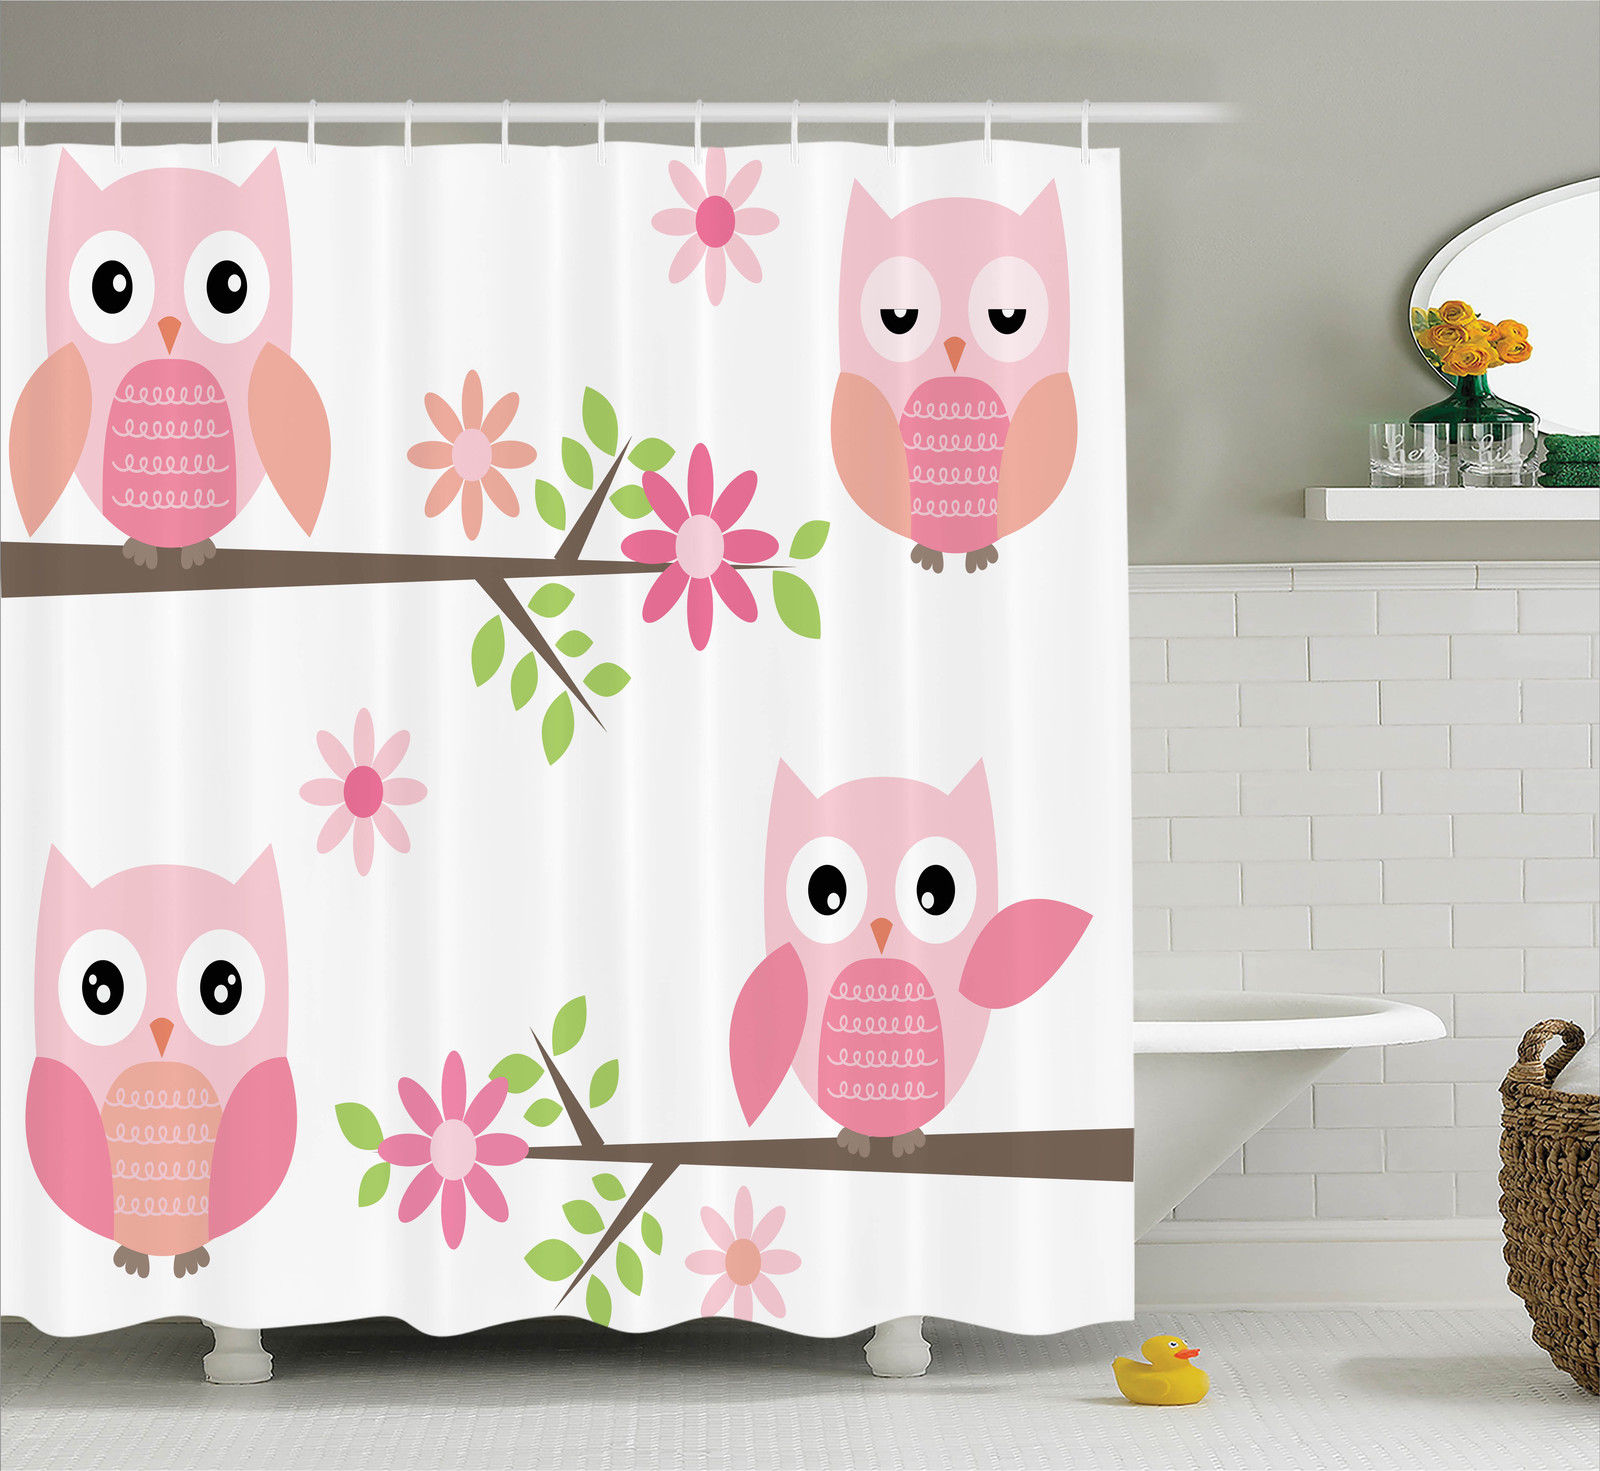 Owls Home Decor Shower Curtain Set, Cute Baby Owls Waving In The Floral Tree Springtime Artful Girly Design Print, Bathroom Accessories, 69W X 70L Inches, By Ambesonne